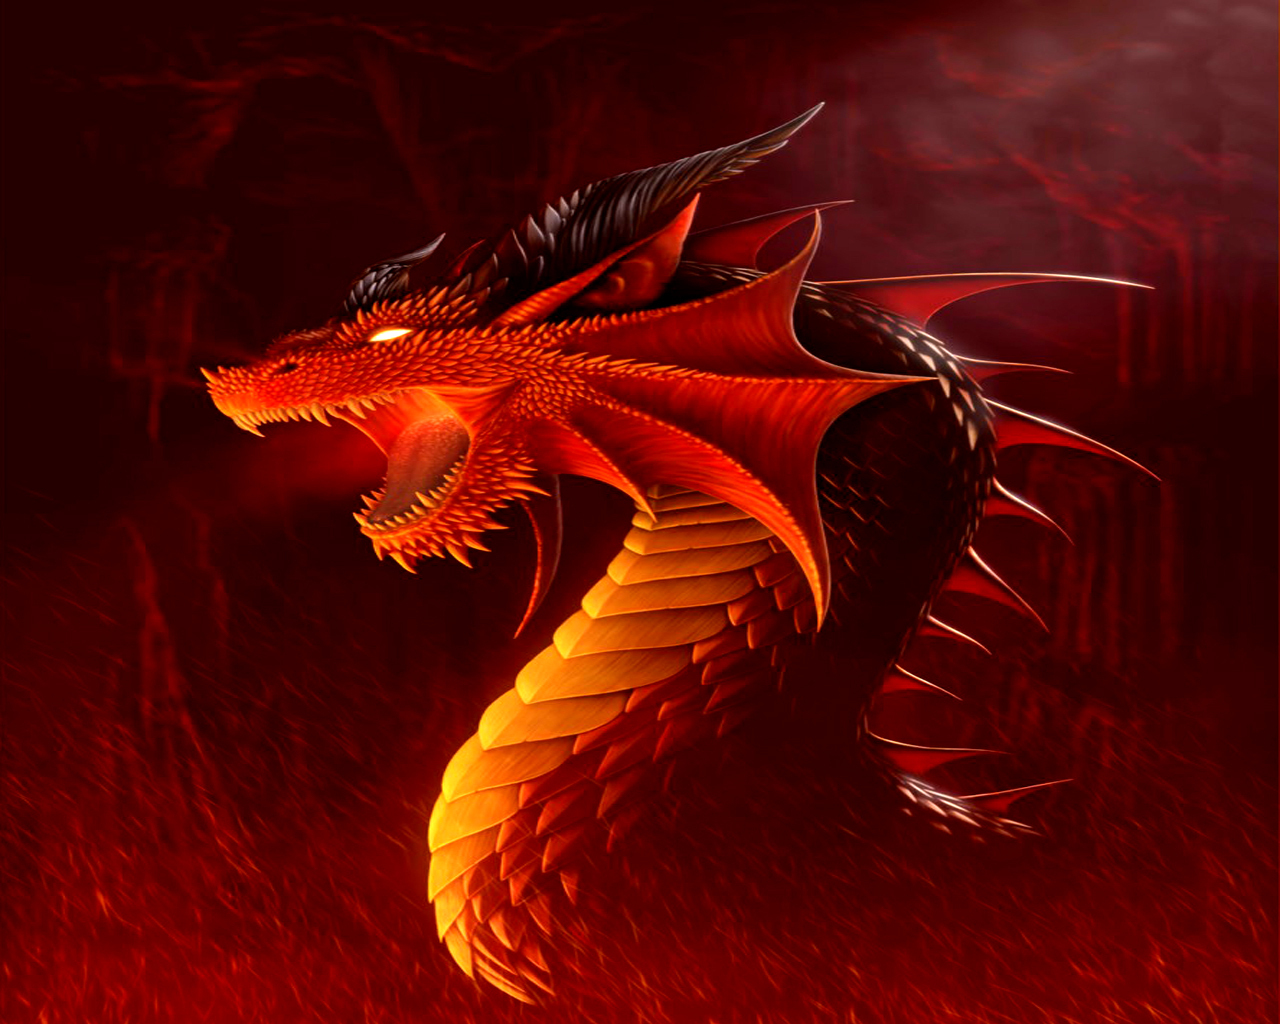 Red Fire Dragon: Pathbreaker: Red Dragon